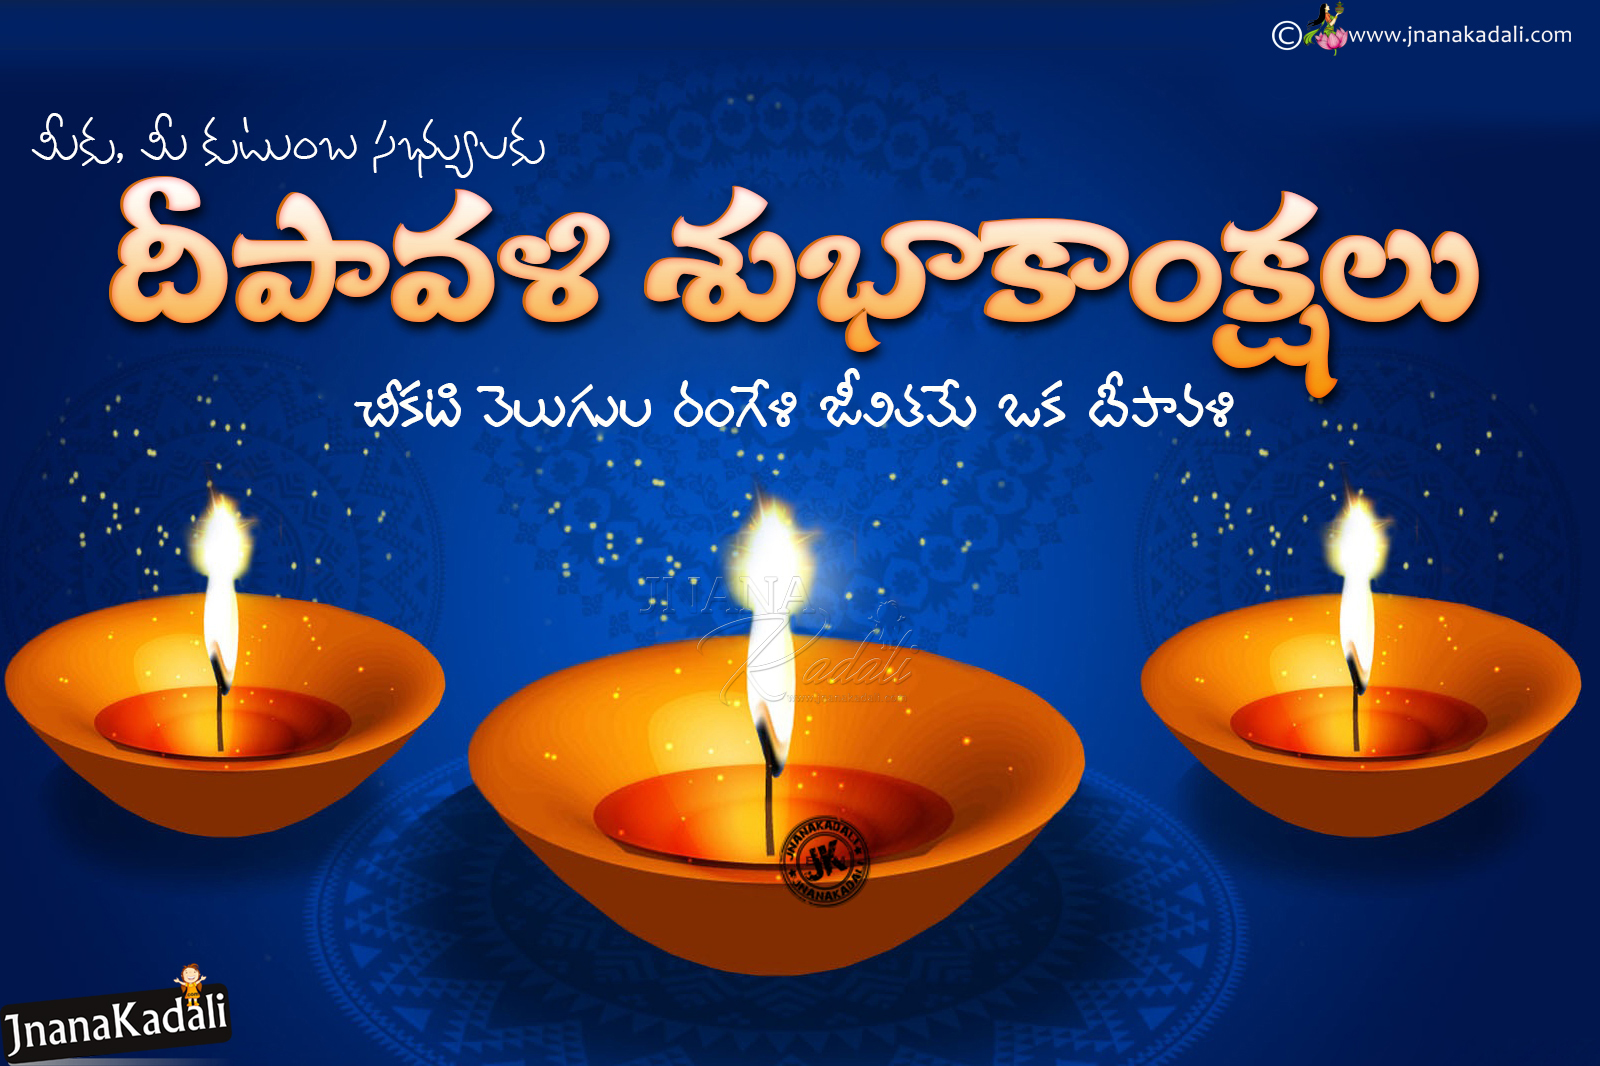 Deepavali Telugu Greetings Free Download Advanced Telugu Deepavali